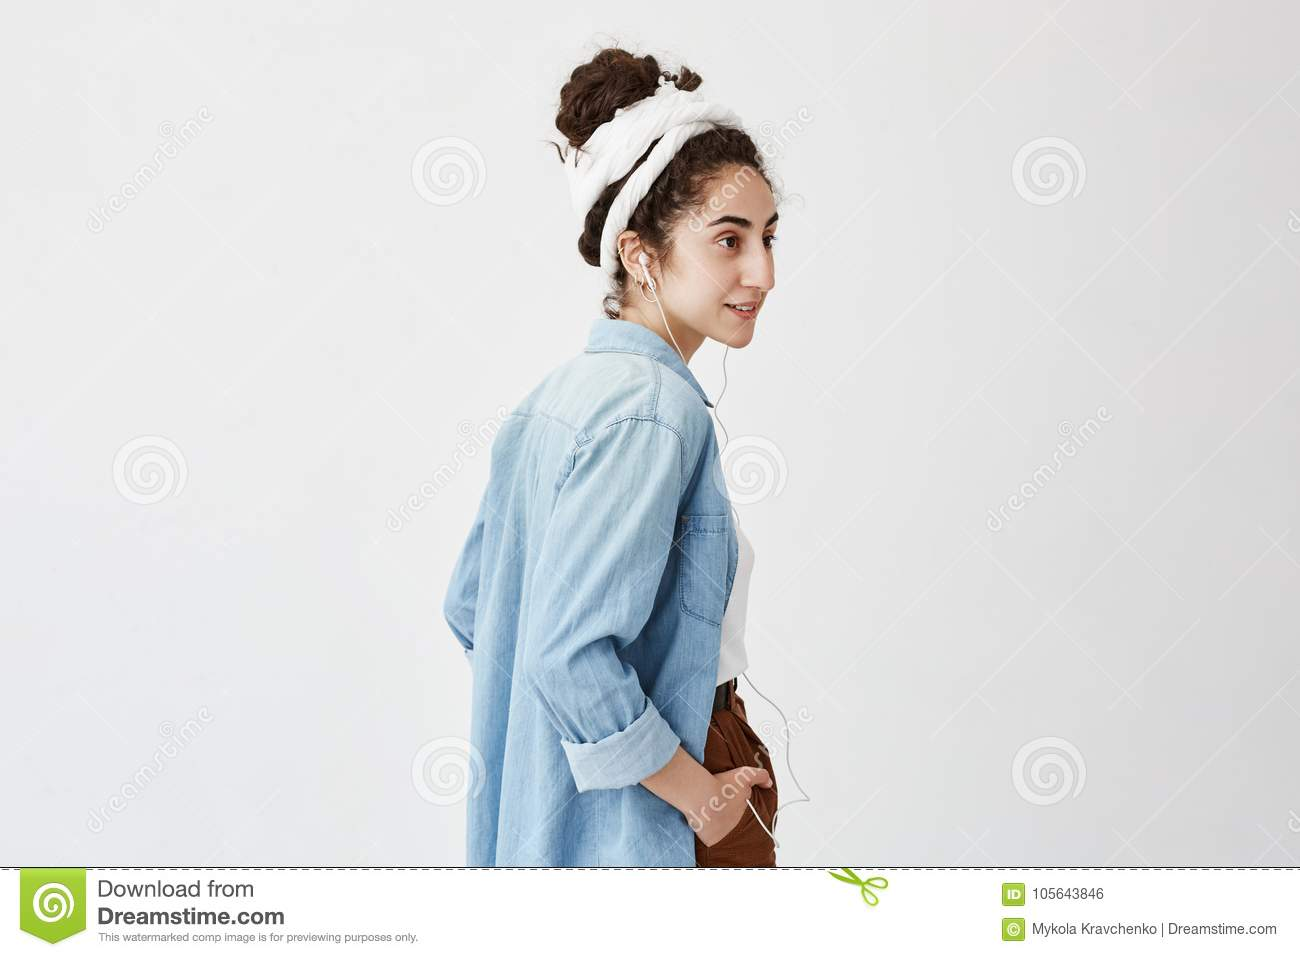 Profile Of Female Teenager Listening To Music Or Audio Book